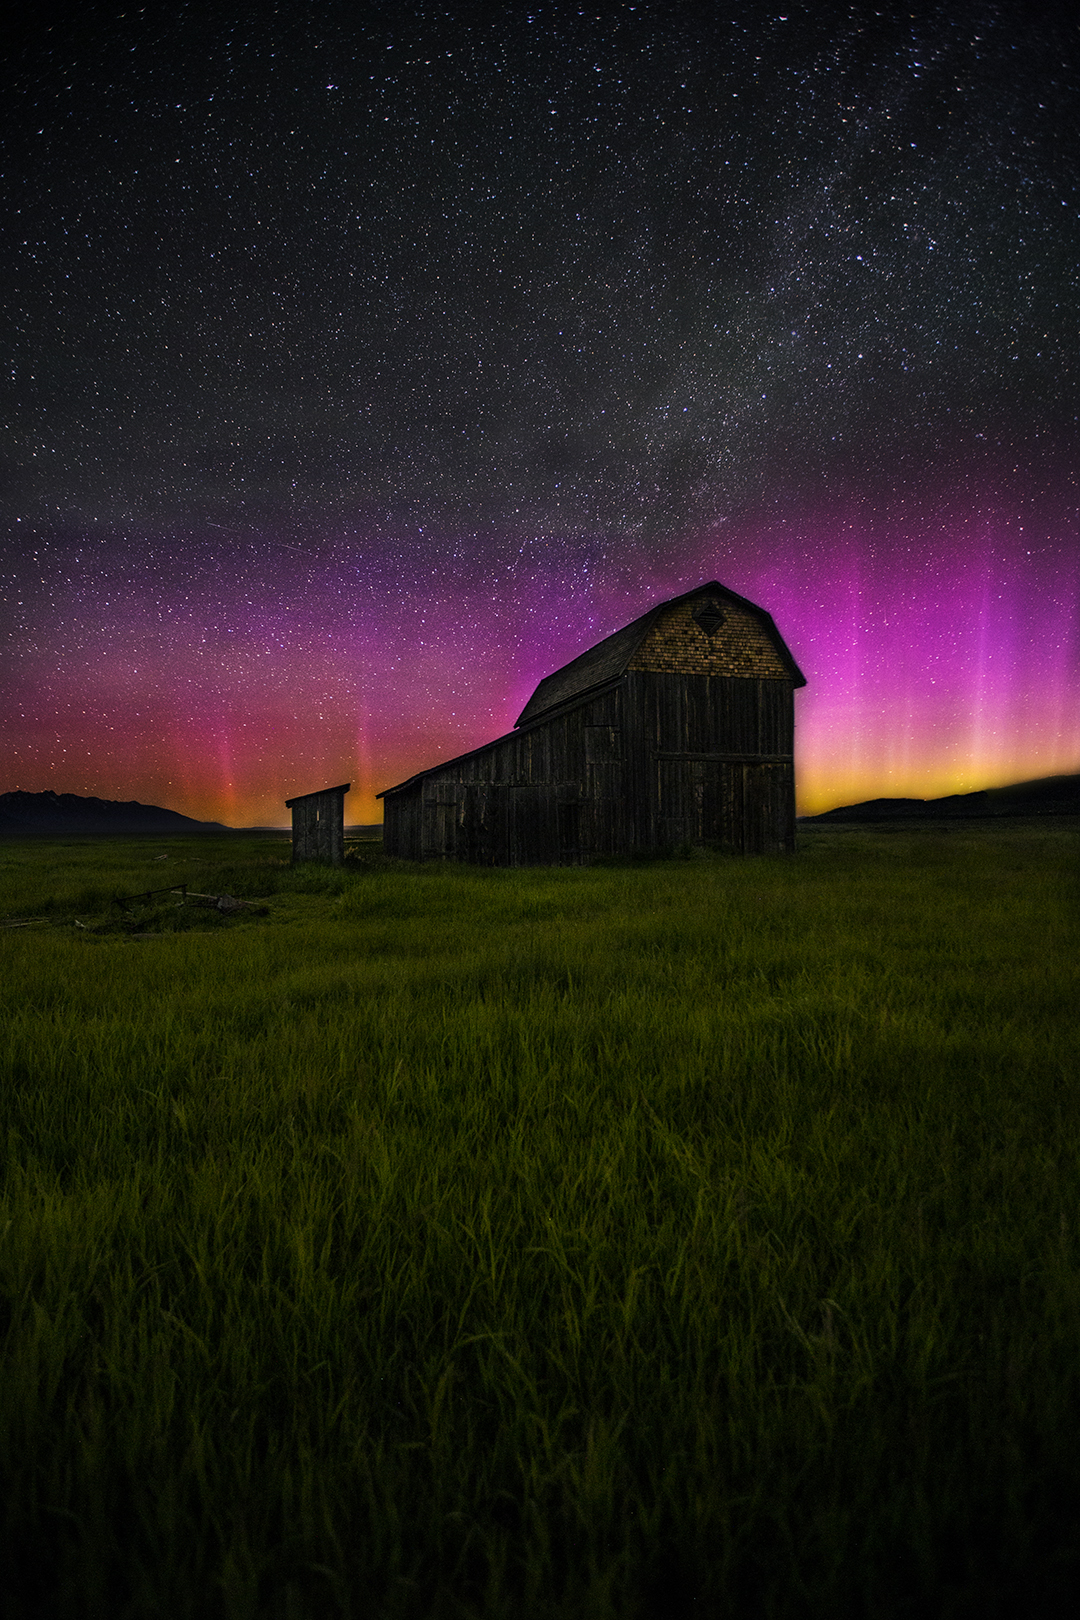 Mormon northern lights eric bennett stars night photography thisworldexists this world exists things to do before you die